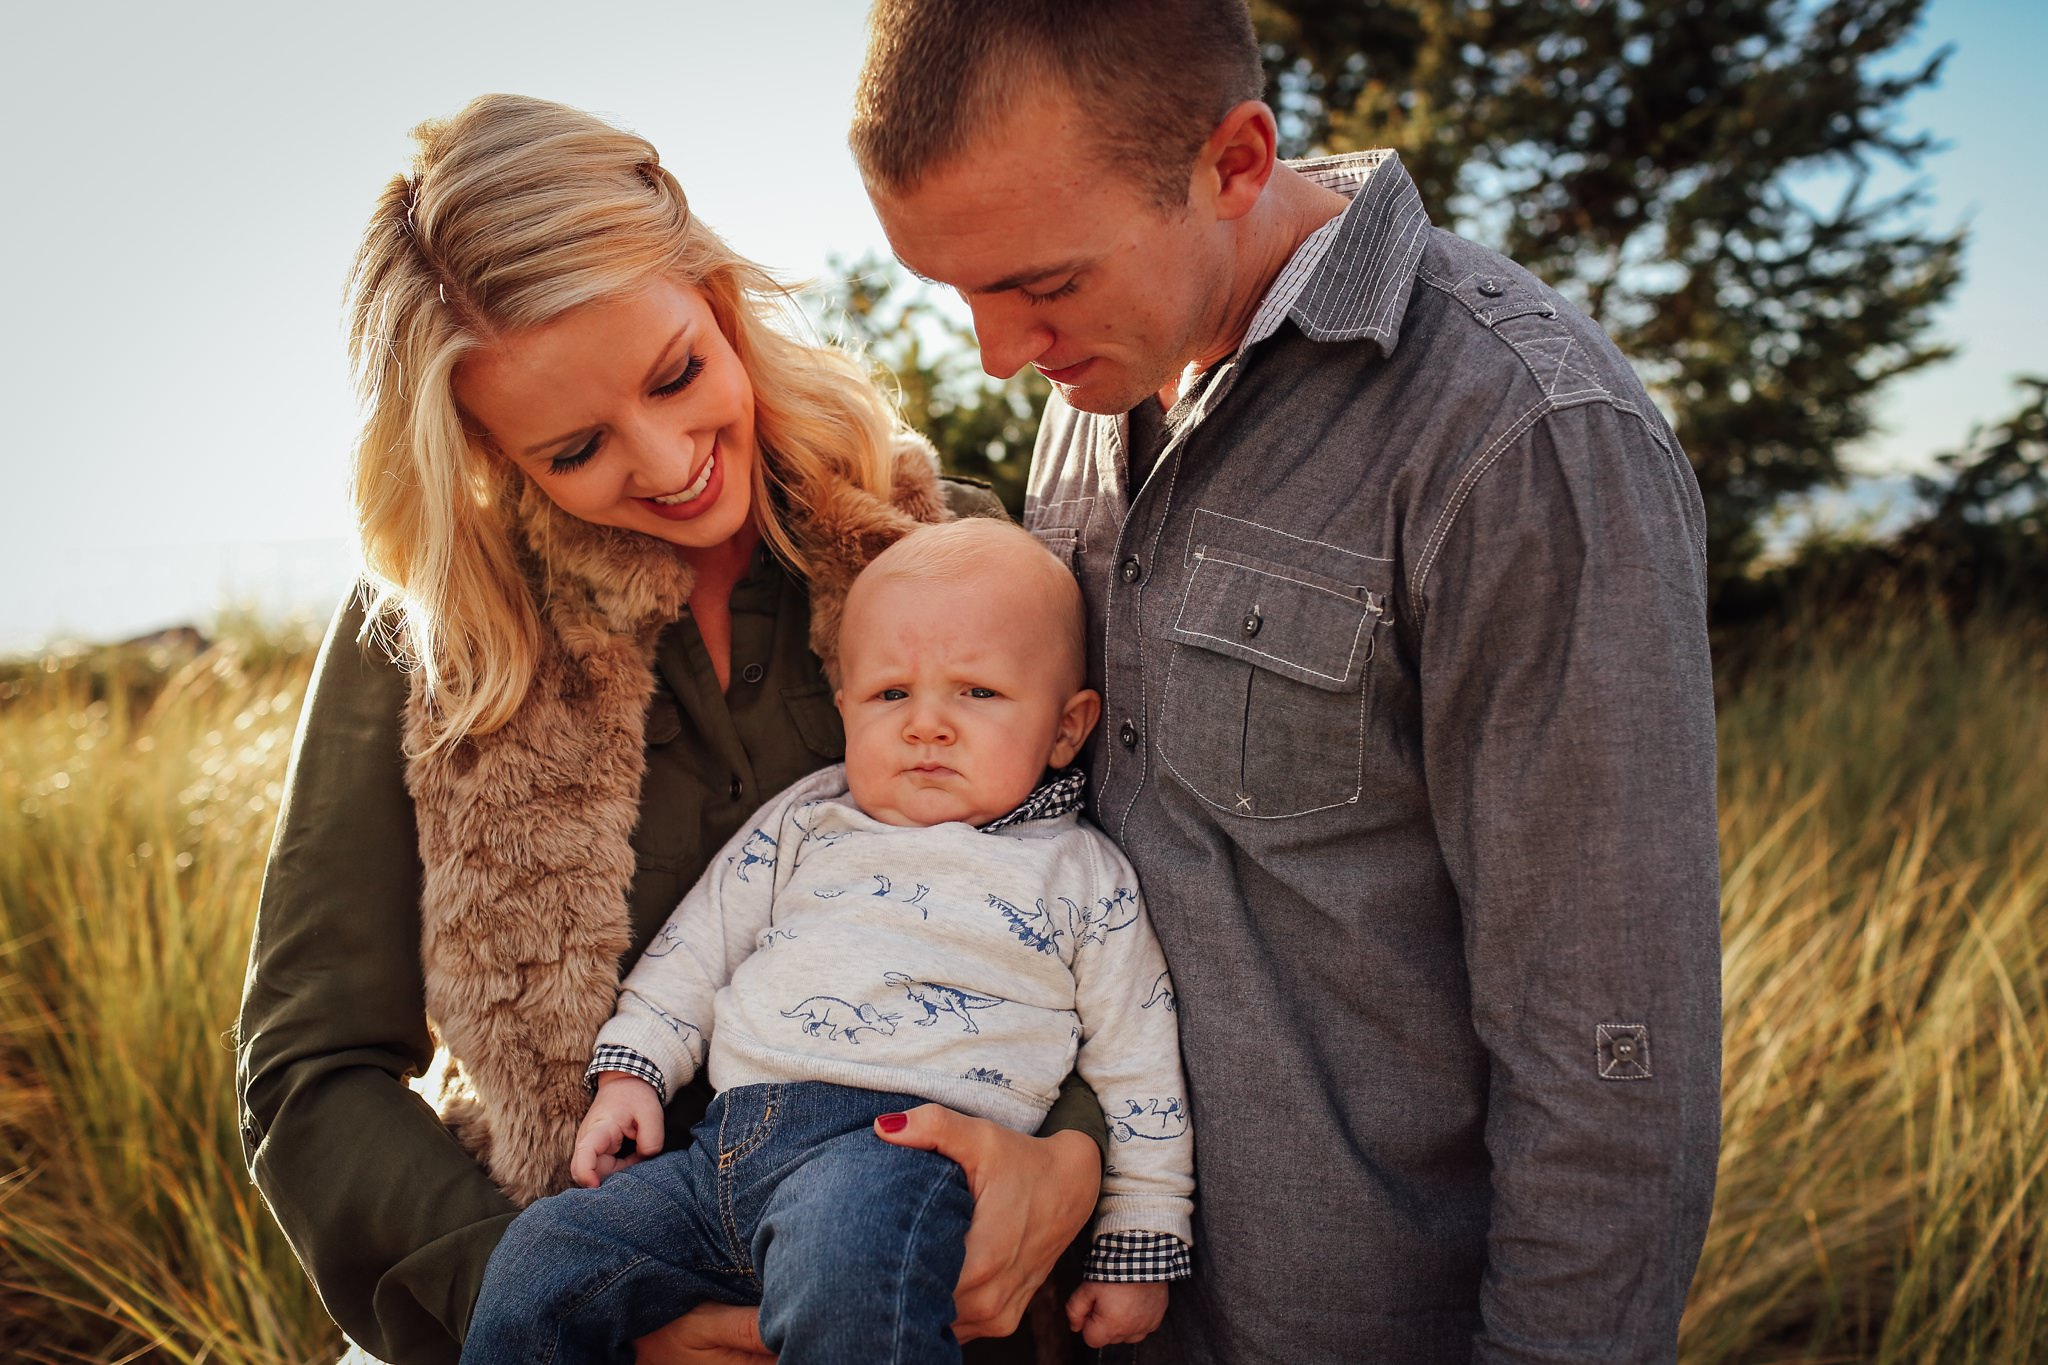 Whidbey-Island-Family-Photographer-Kara-Chappell-Photography_1349.jpg